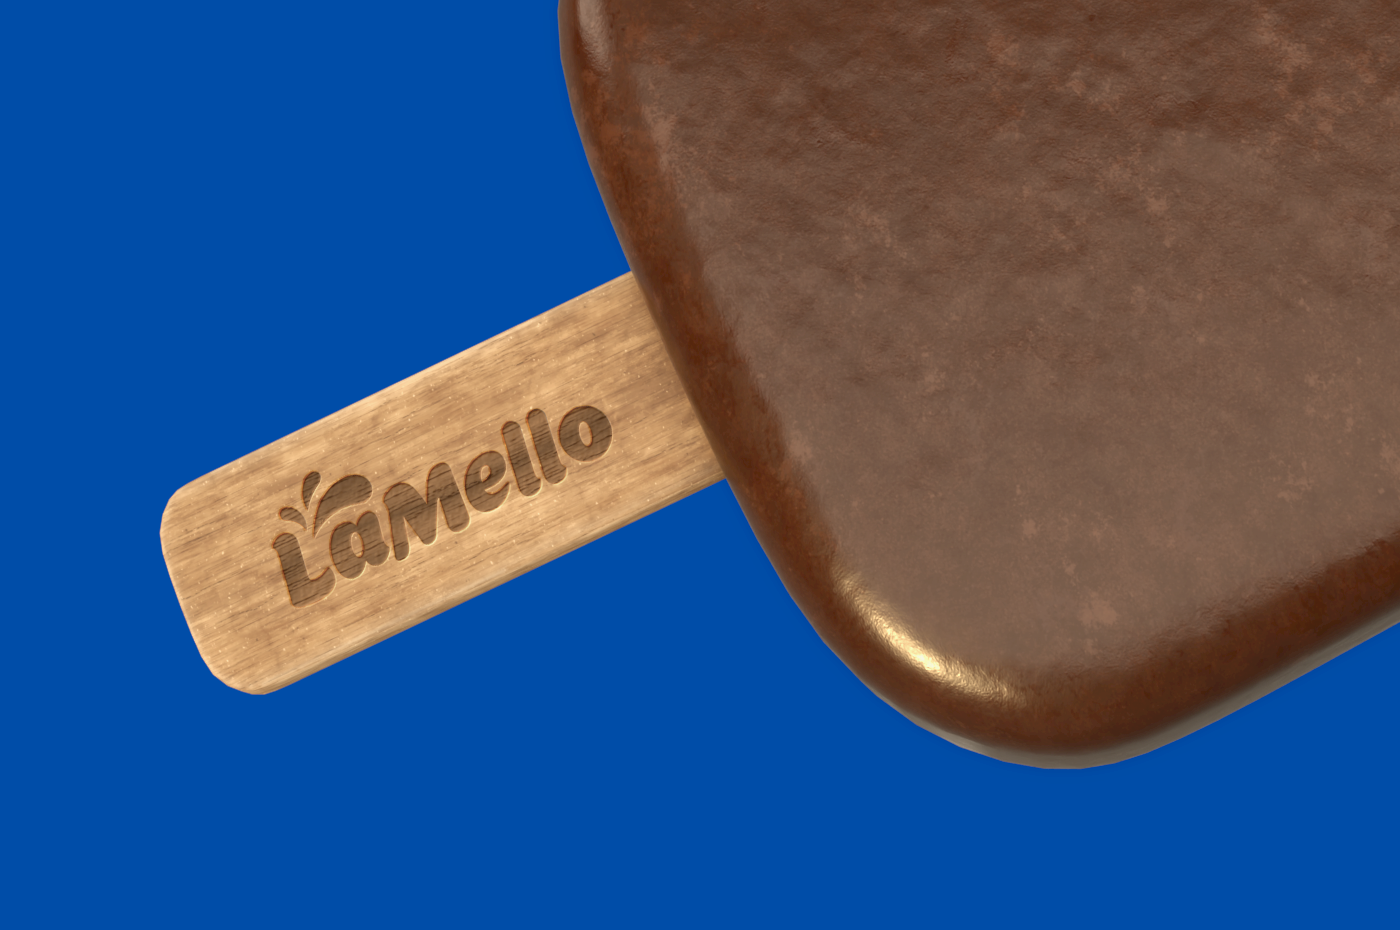 Lamello Ice Cream Brand and Packaging